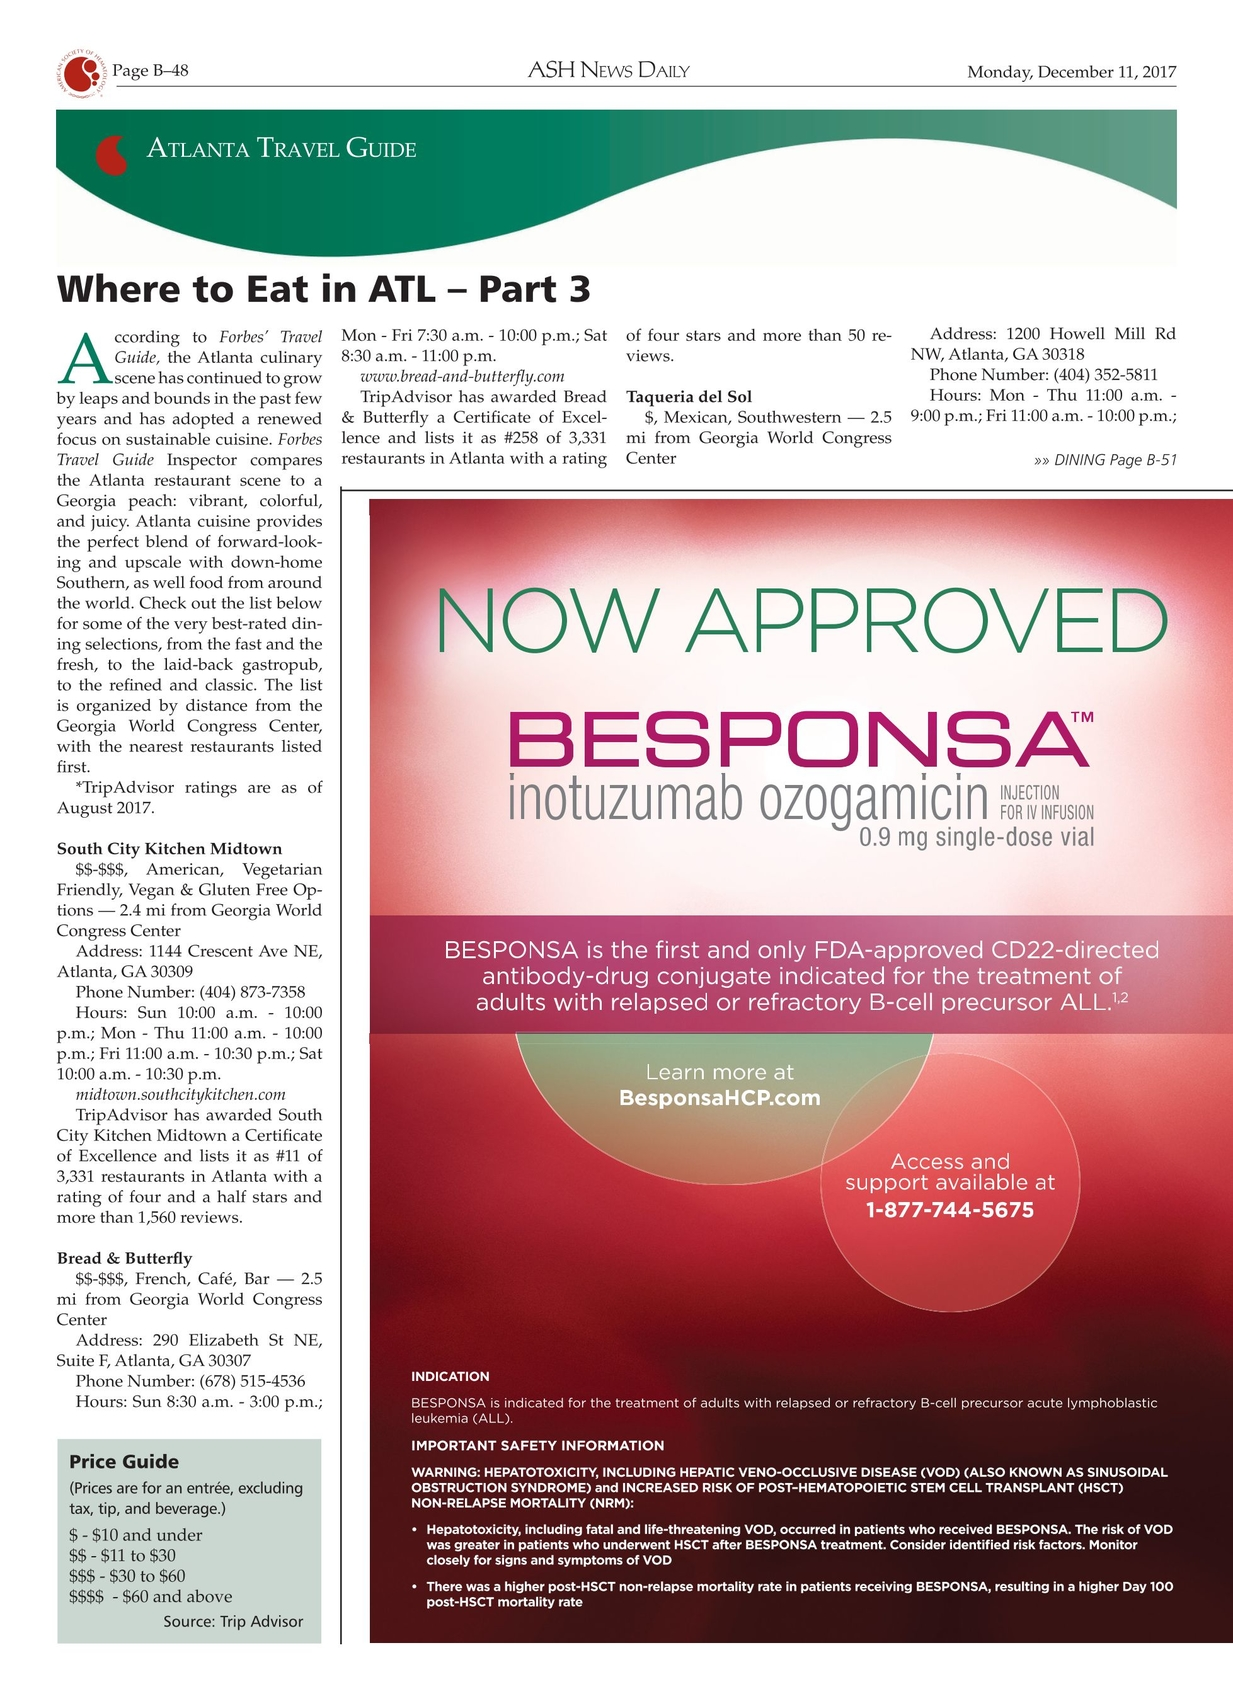 ASH News Daily 2017 - Issue 3